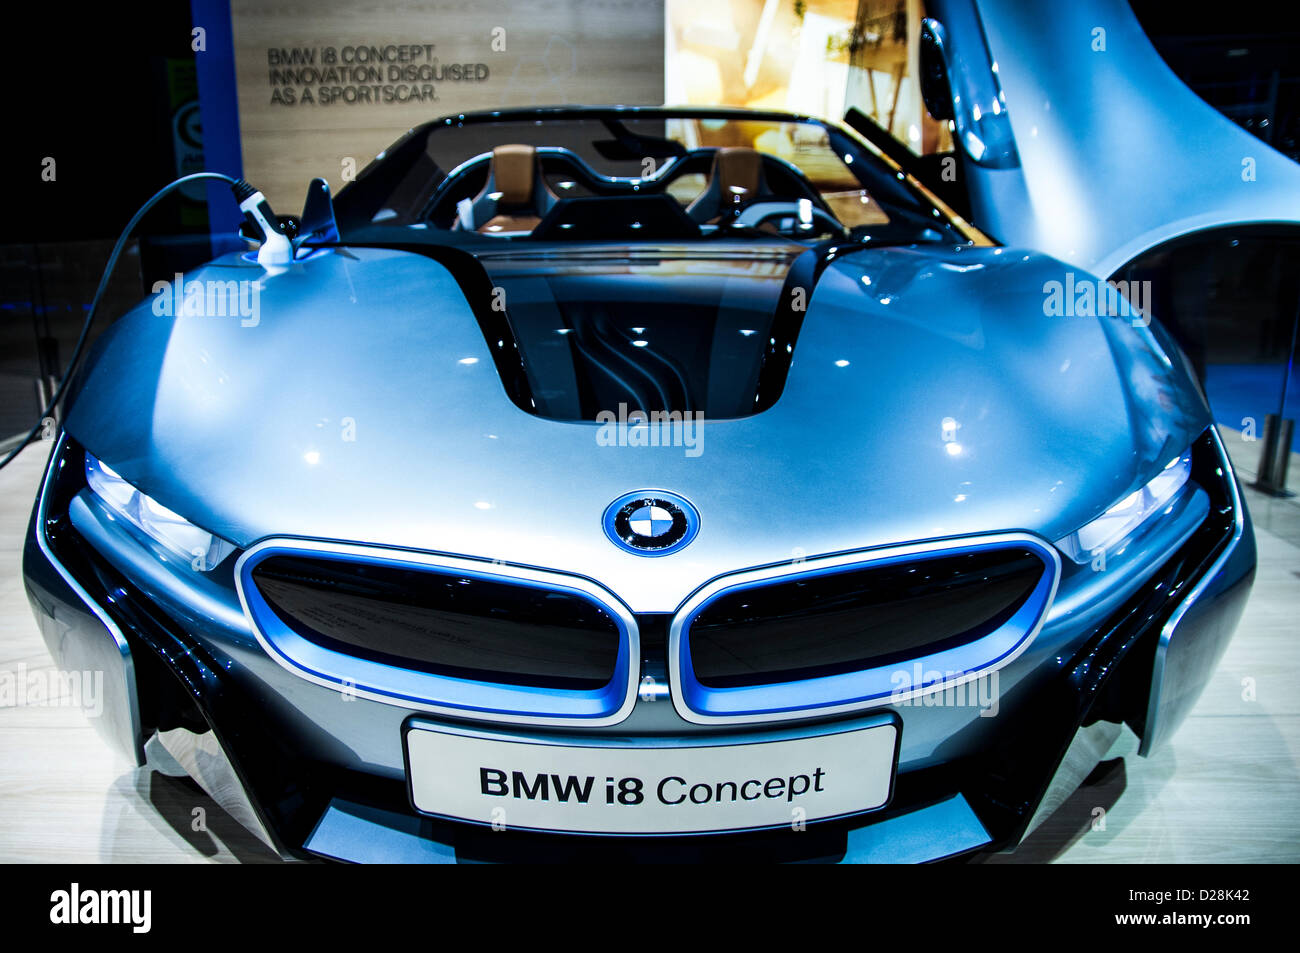 Bmw I8 Concept Electric Car In American International Auto Show